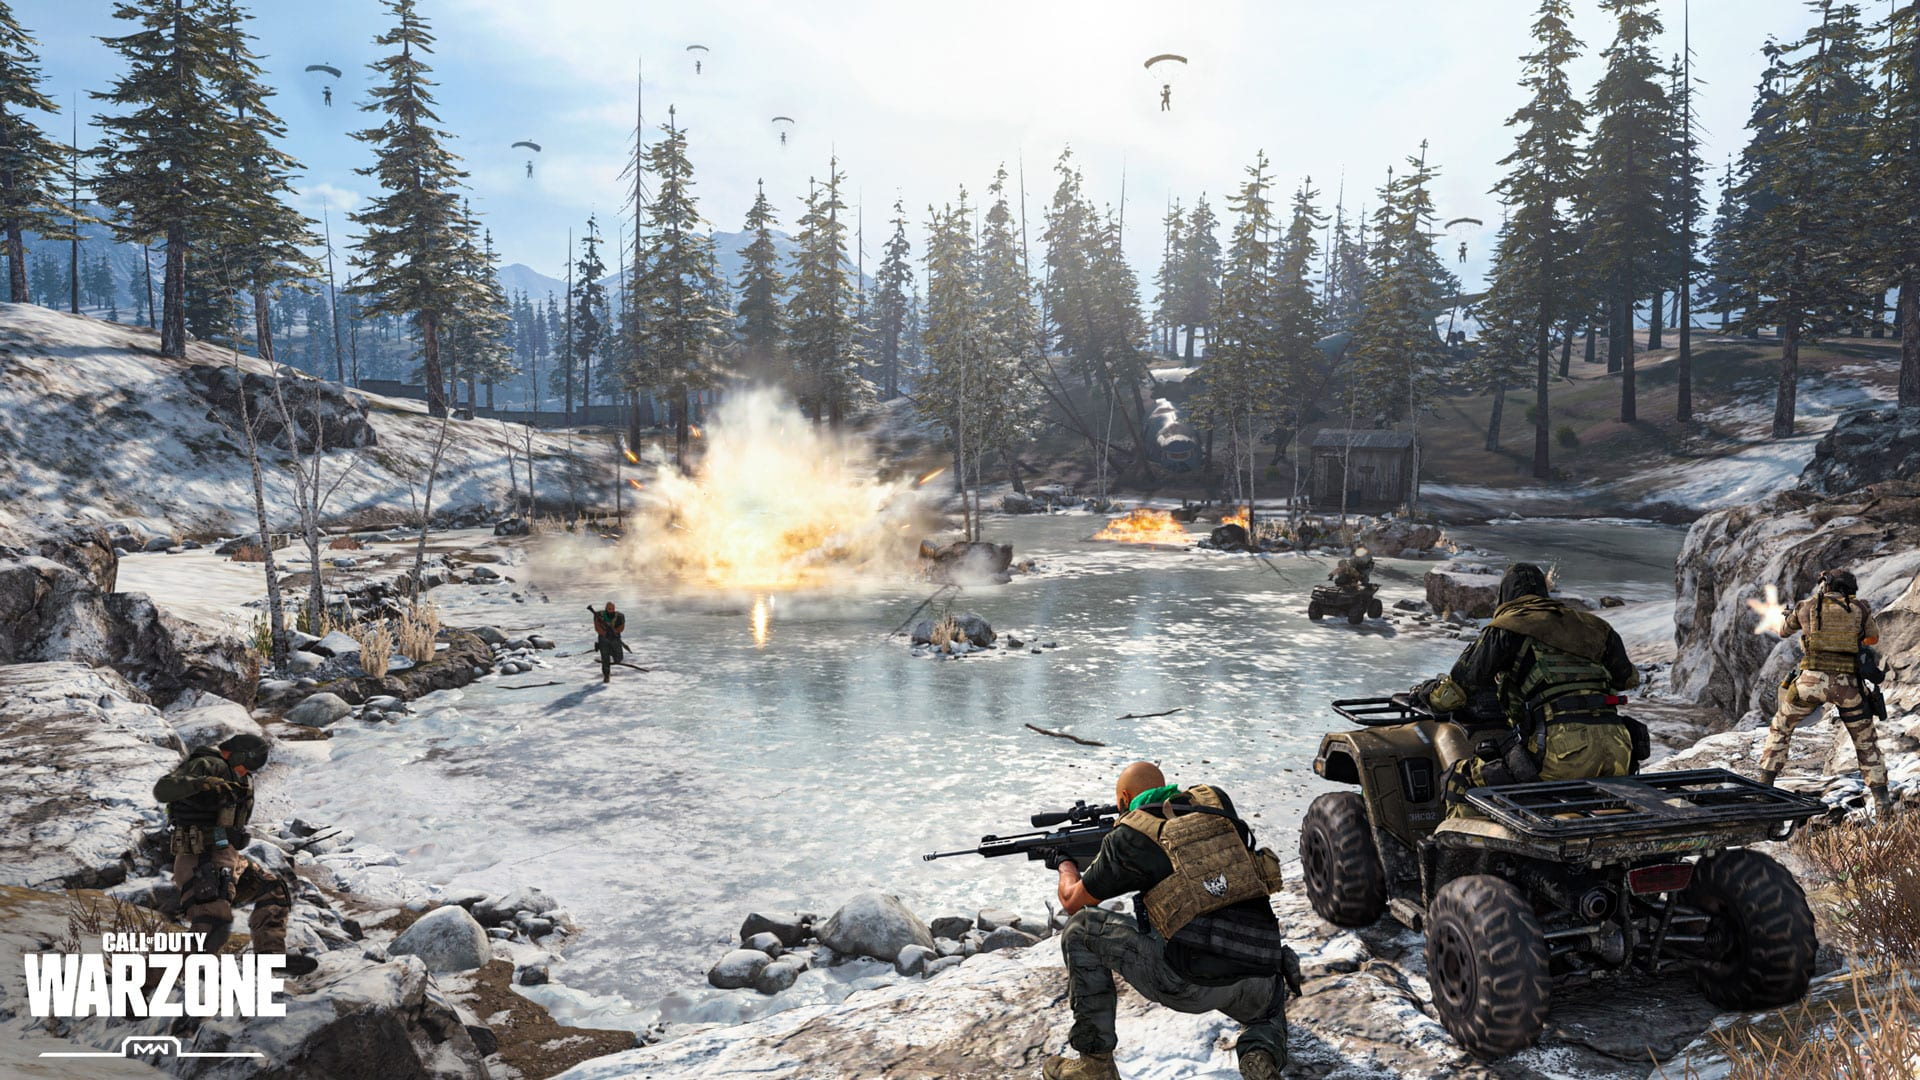 Toys for Bob shifts to development support on Call of Duty: Warzone